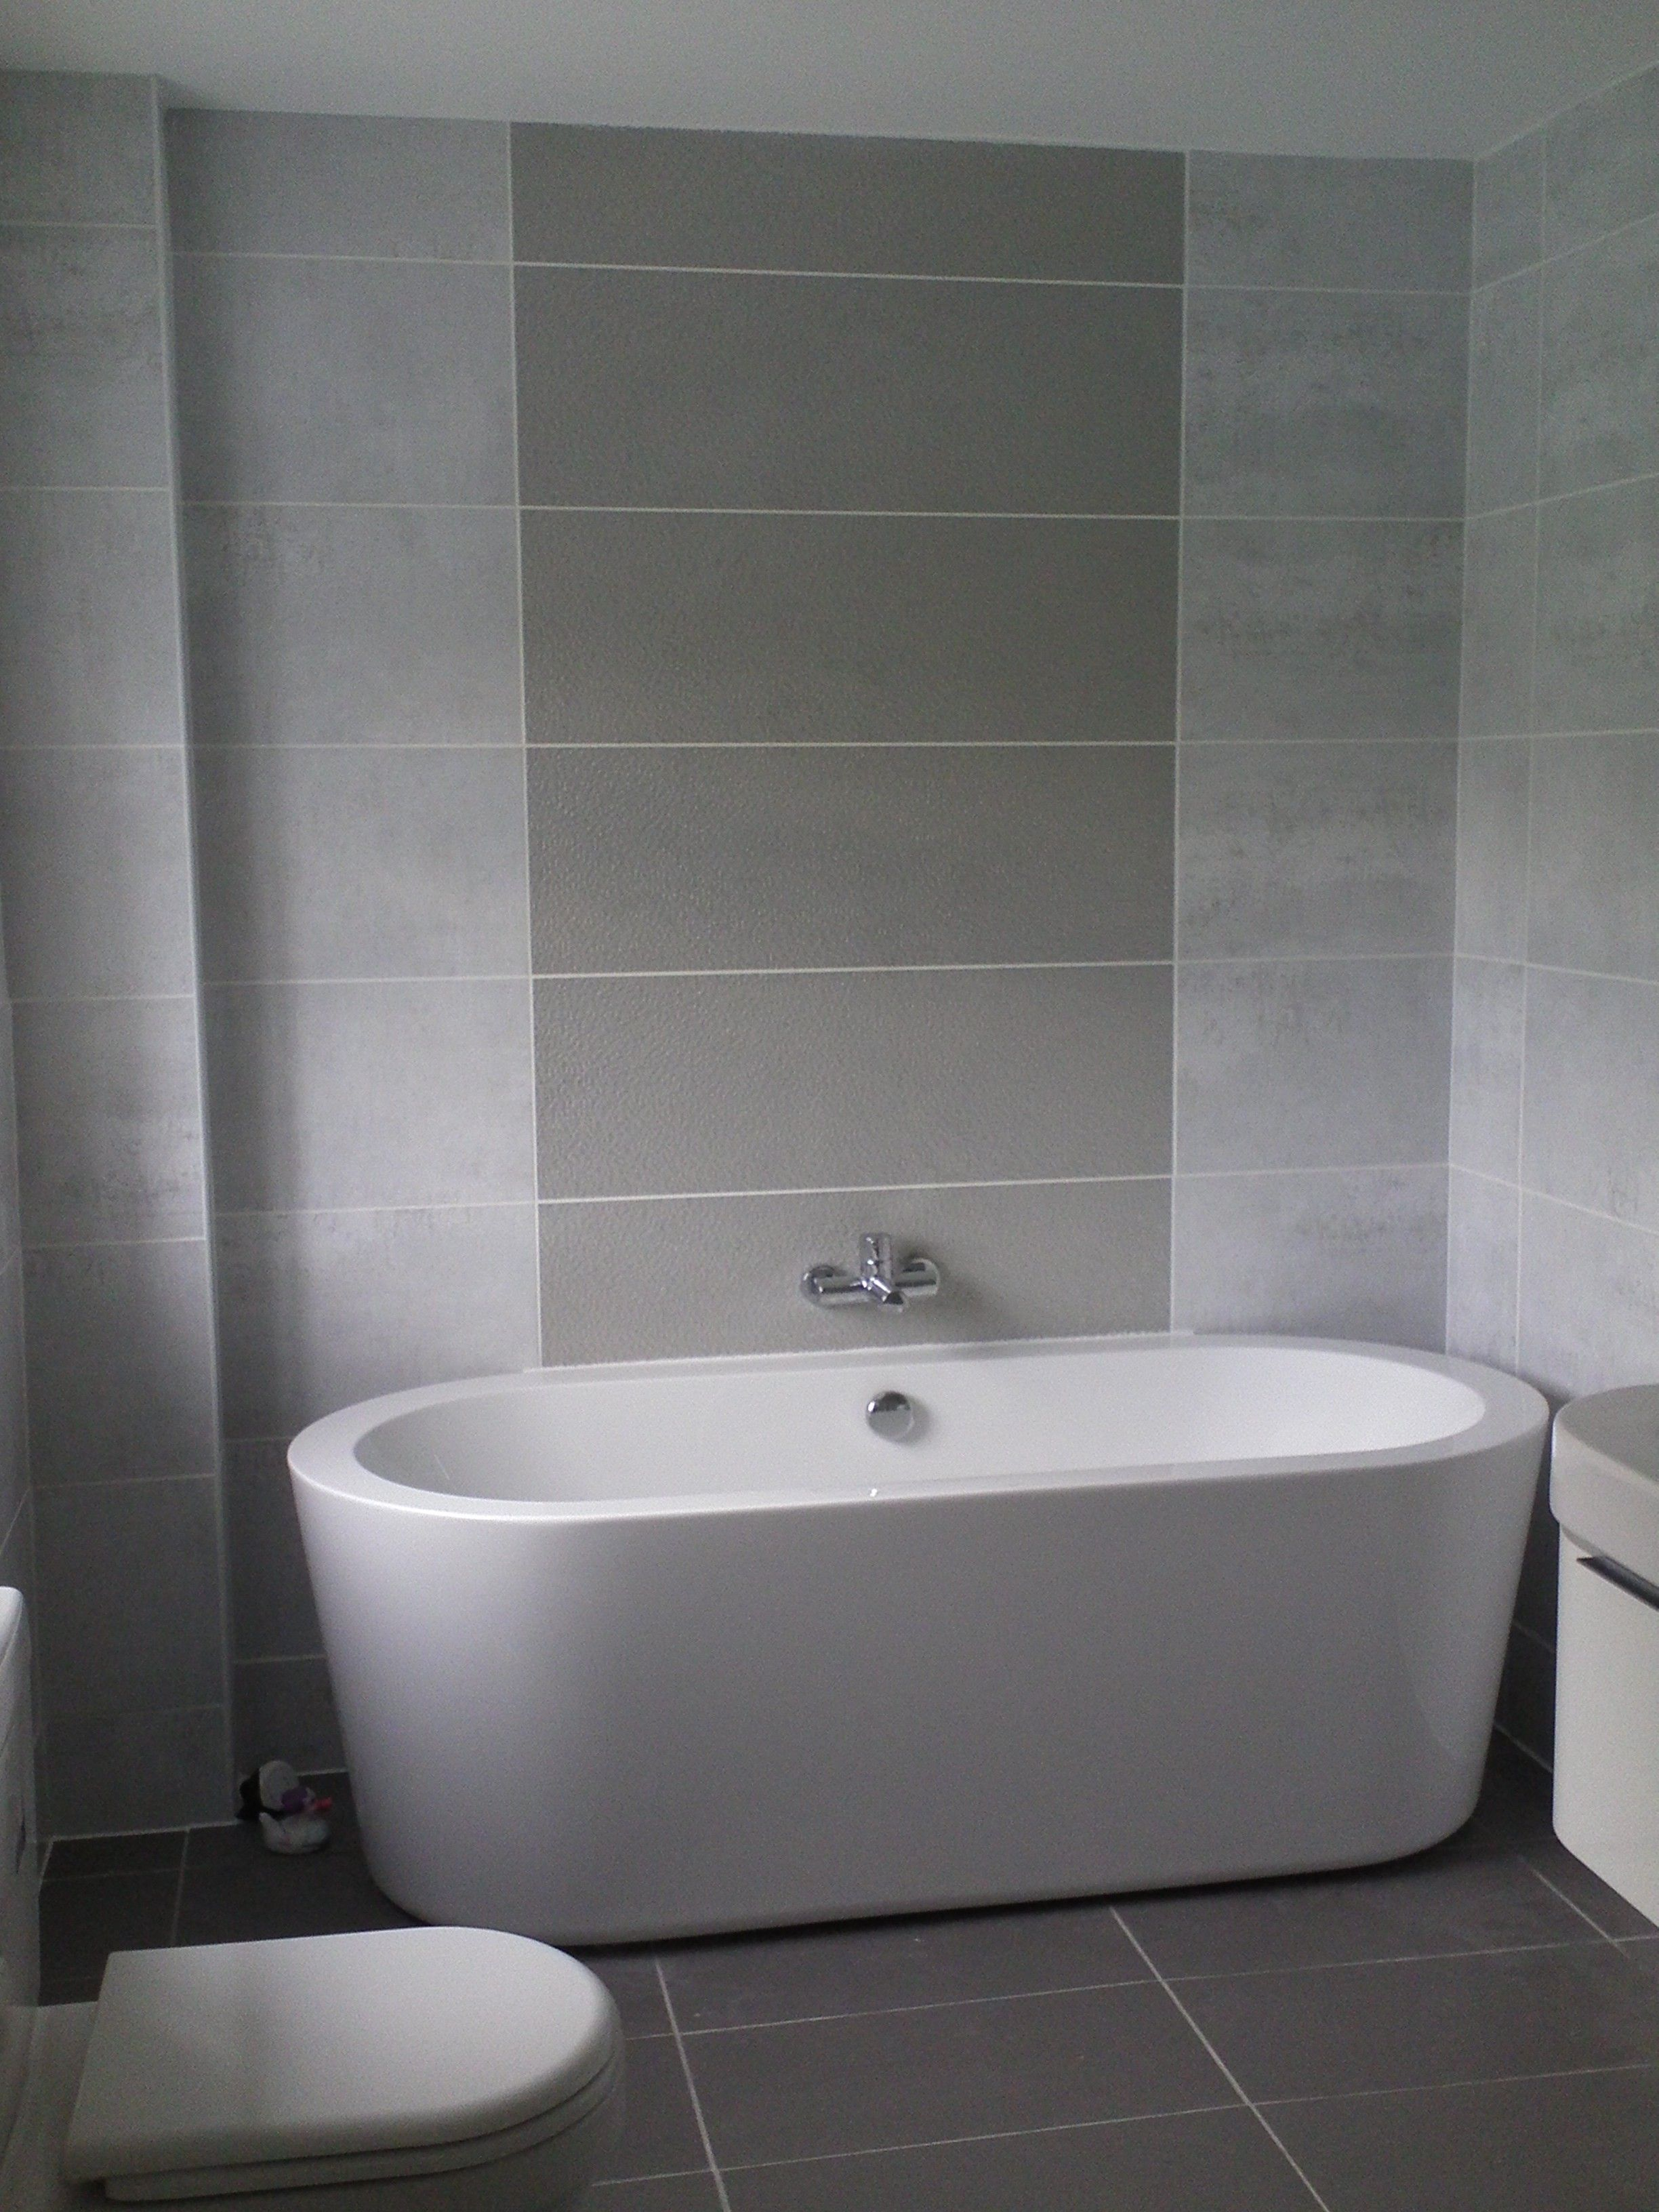 Grey Is Quickly Becoming The Colour Of Choice When It Comes To Bathroom Styling Best Grey Bathroom Ideas Grey Bathroom Tiles Tile Bathroom Grey Bathrooms